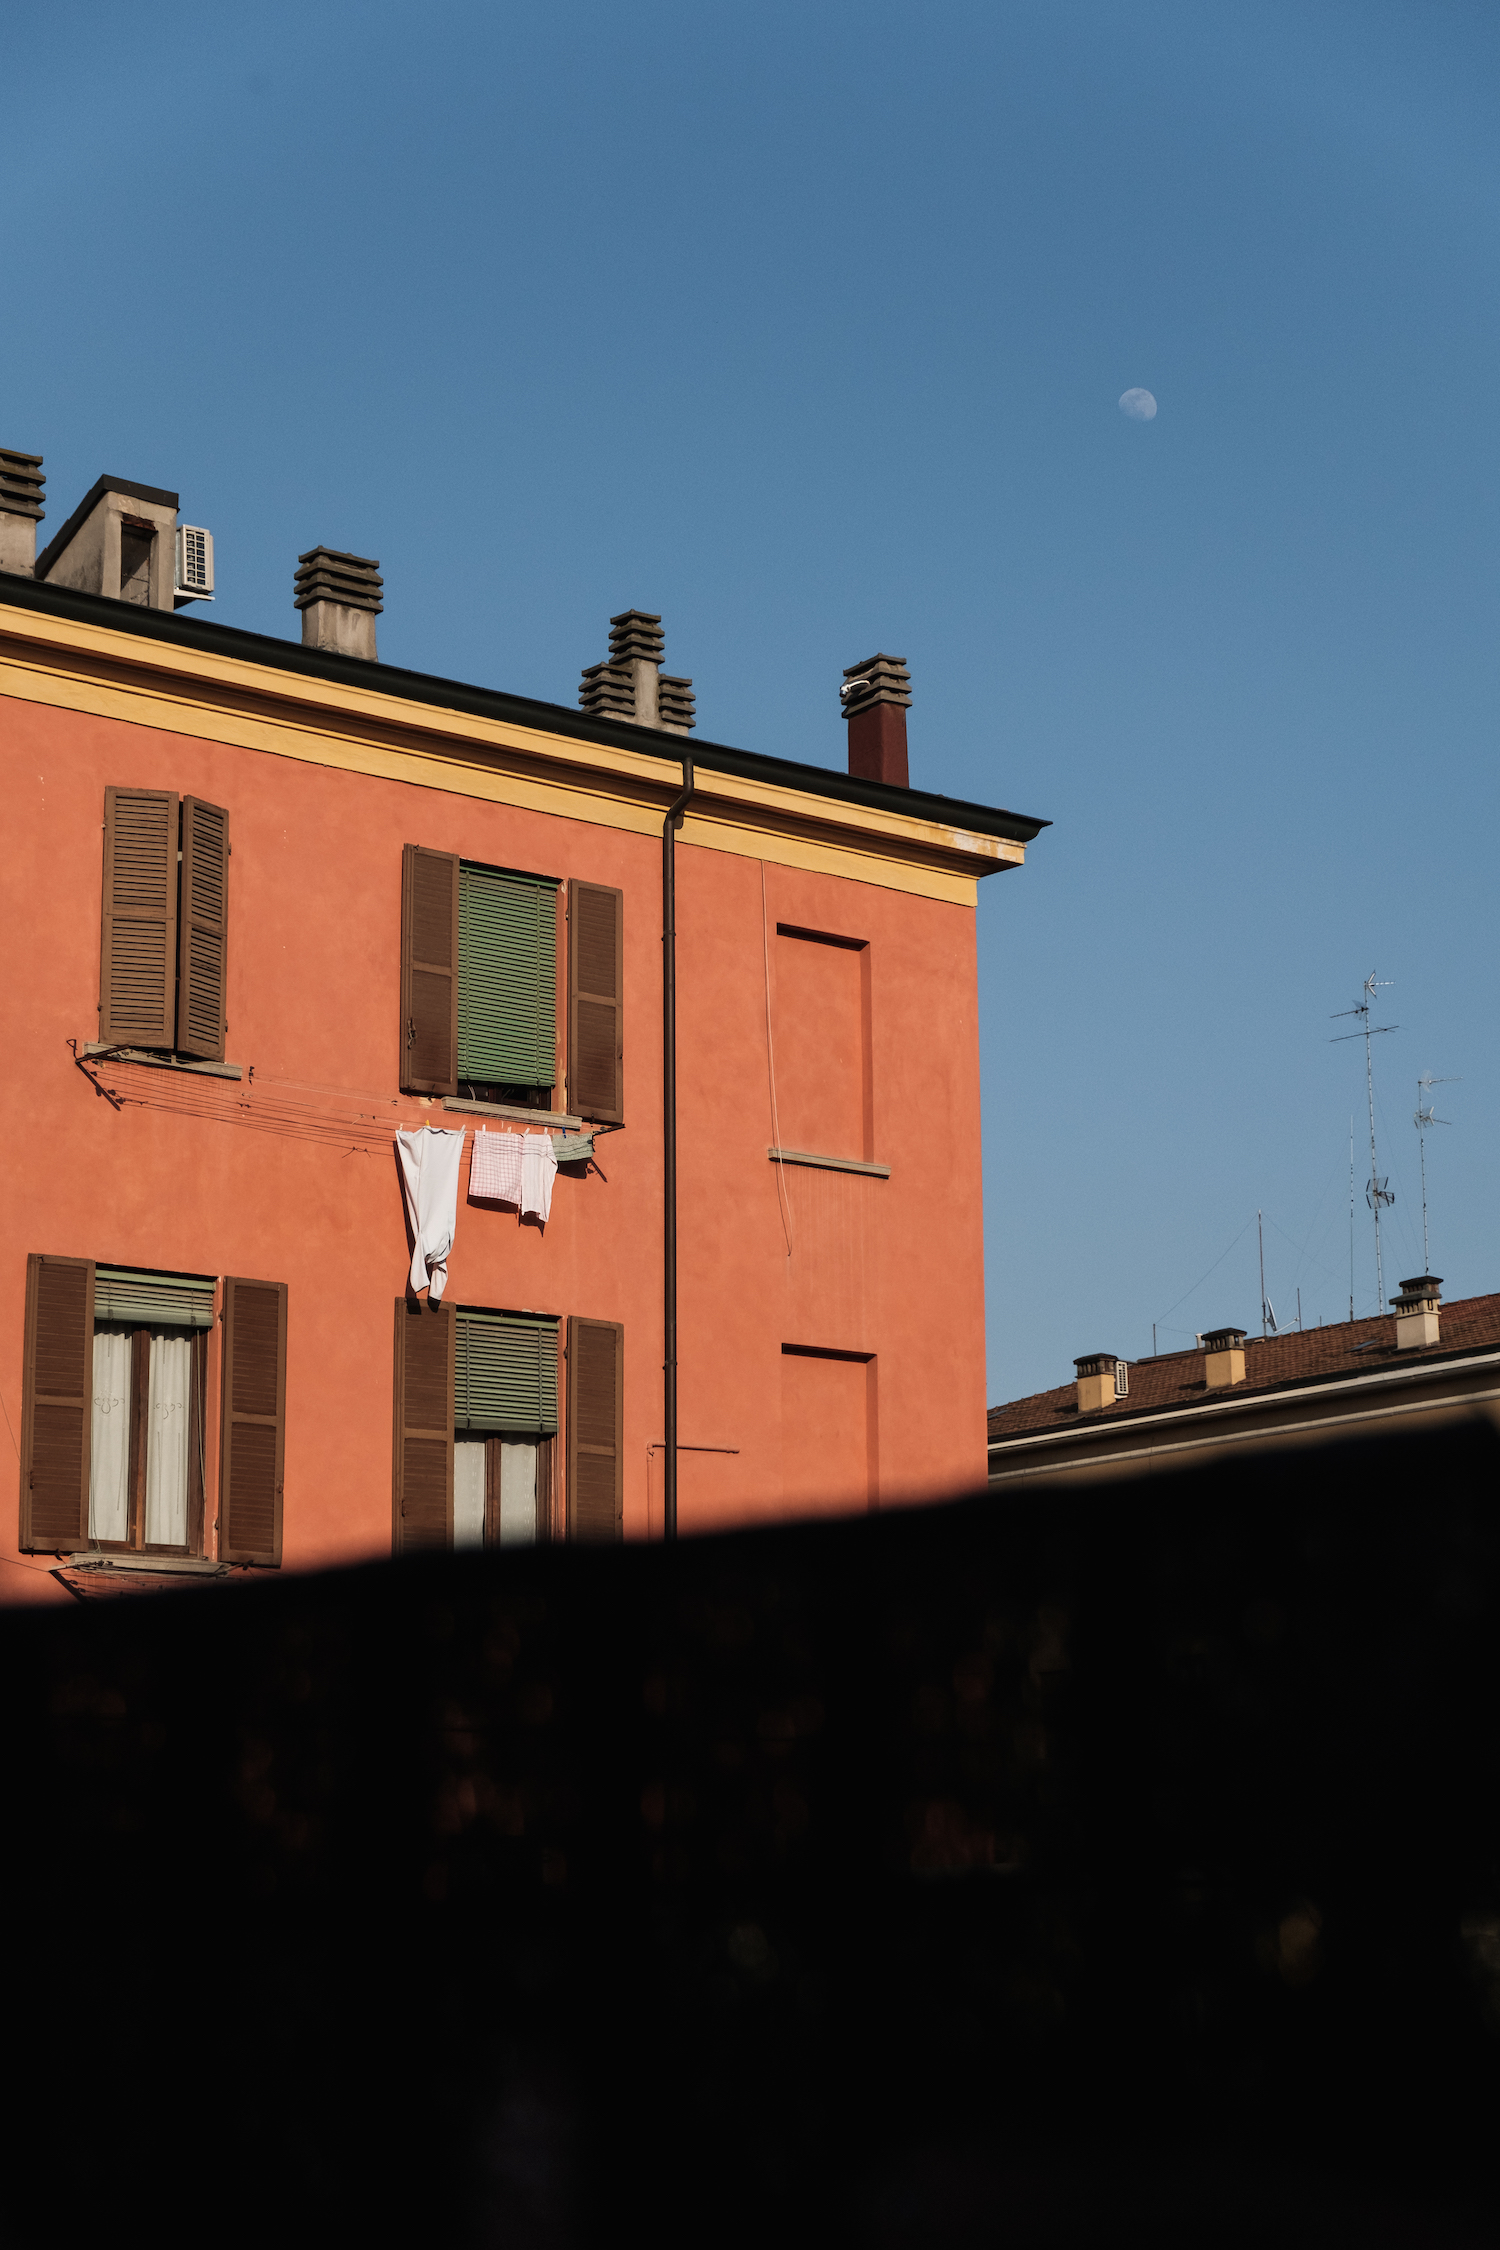 Colourful buildings in Modena - Travel and Street Photography by Ben Holbrook from DriftwoodJournals.com-5607